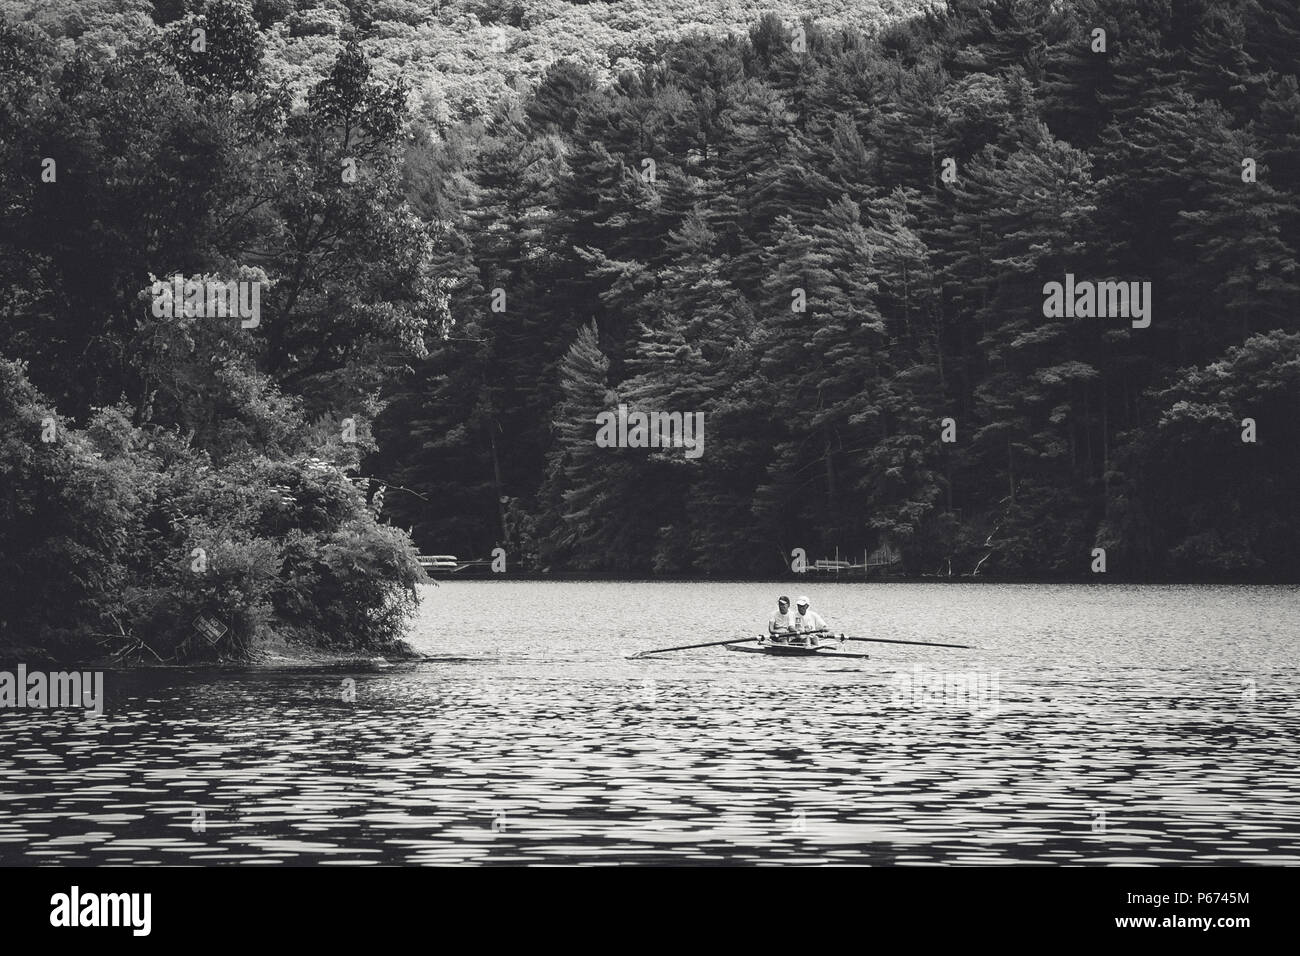 Two rowers in a pair on Lake Luzerne, New York Stock Photo